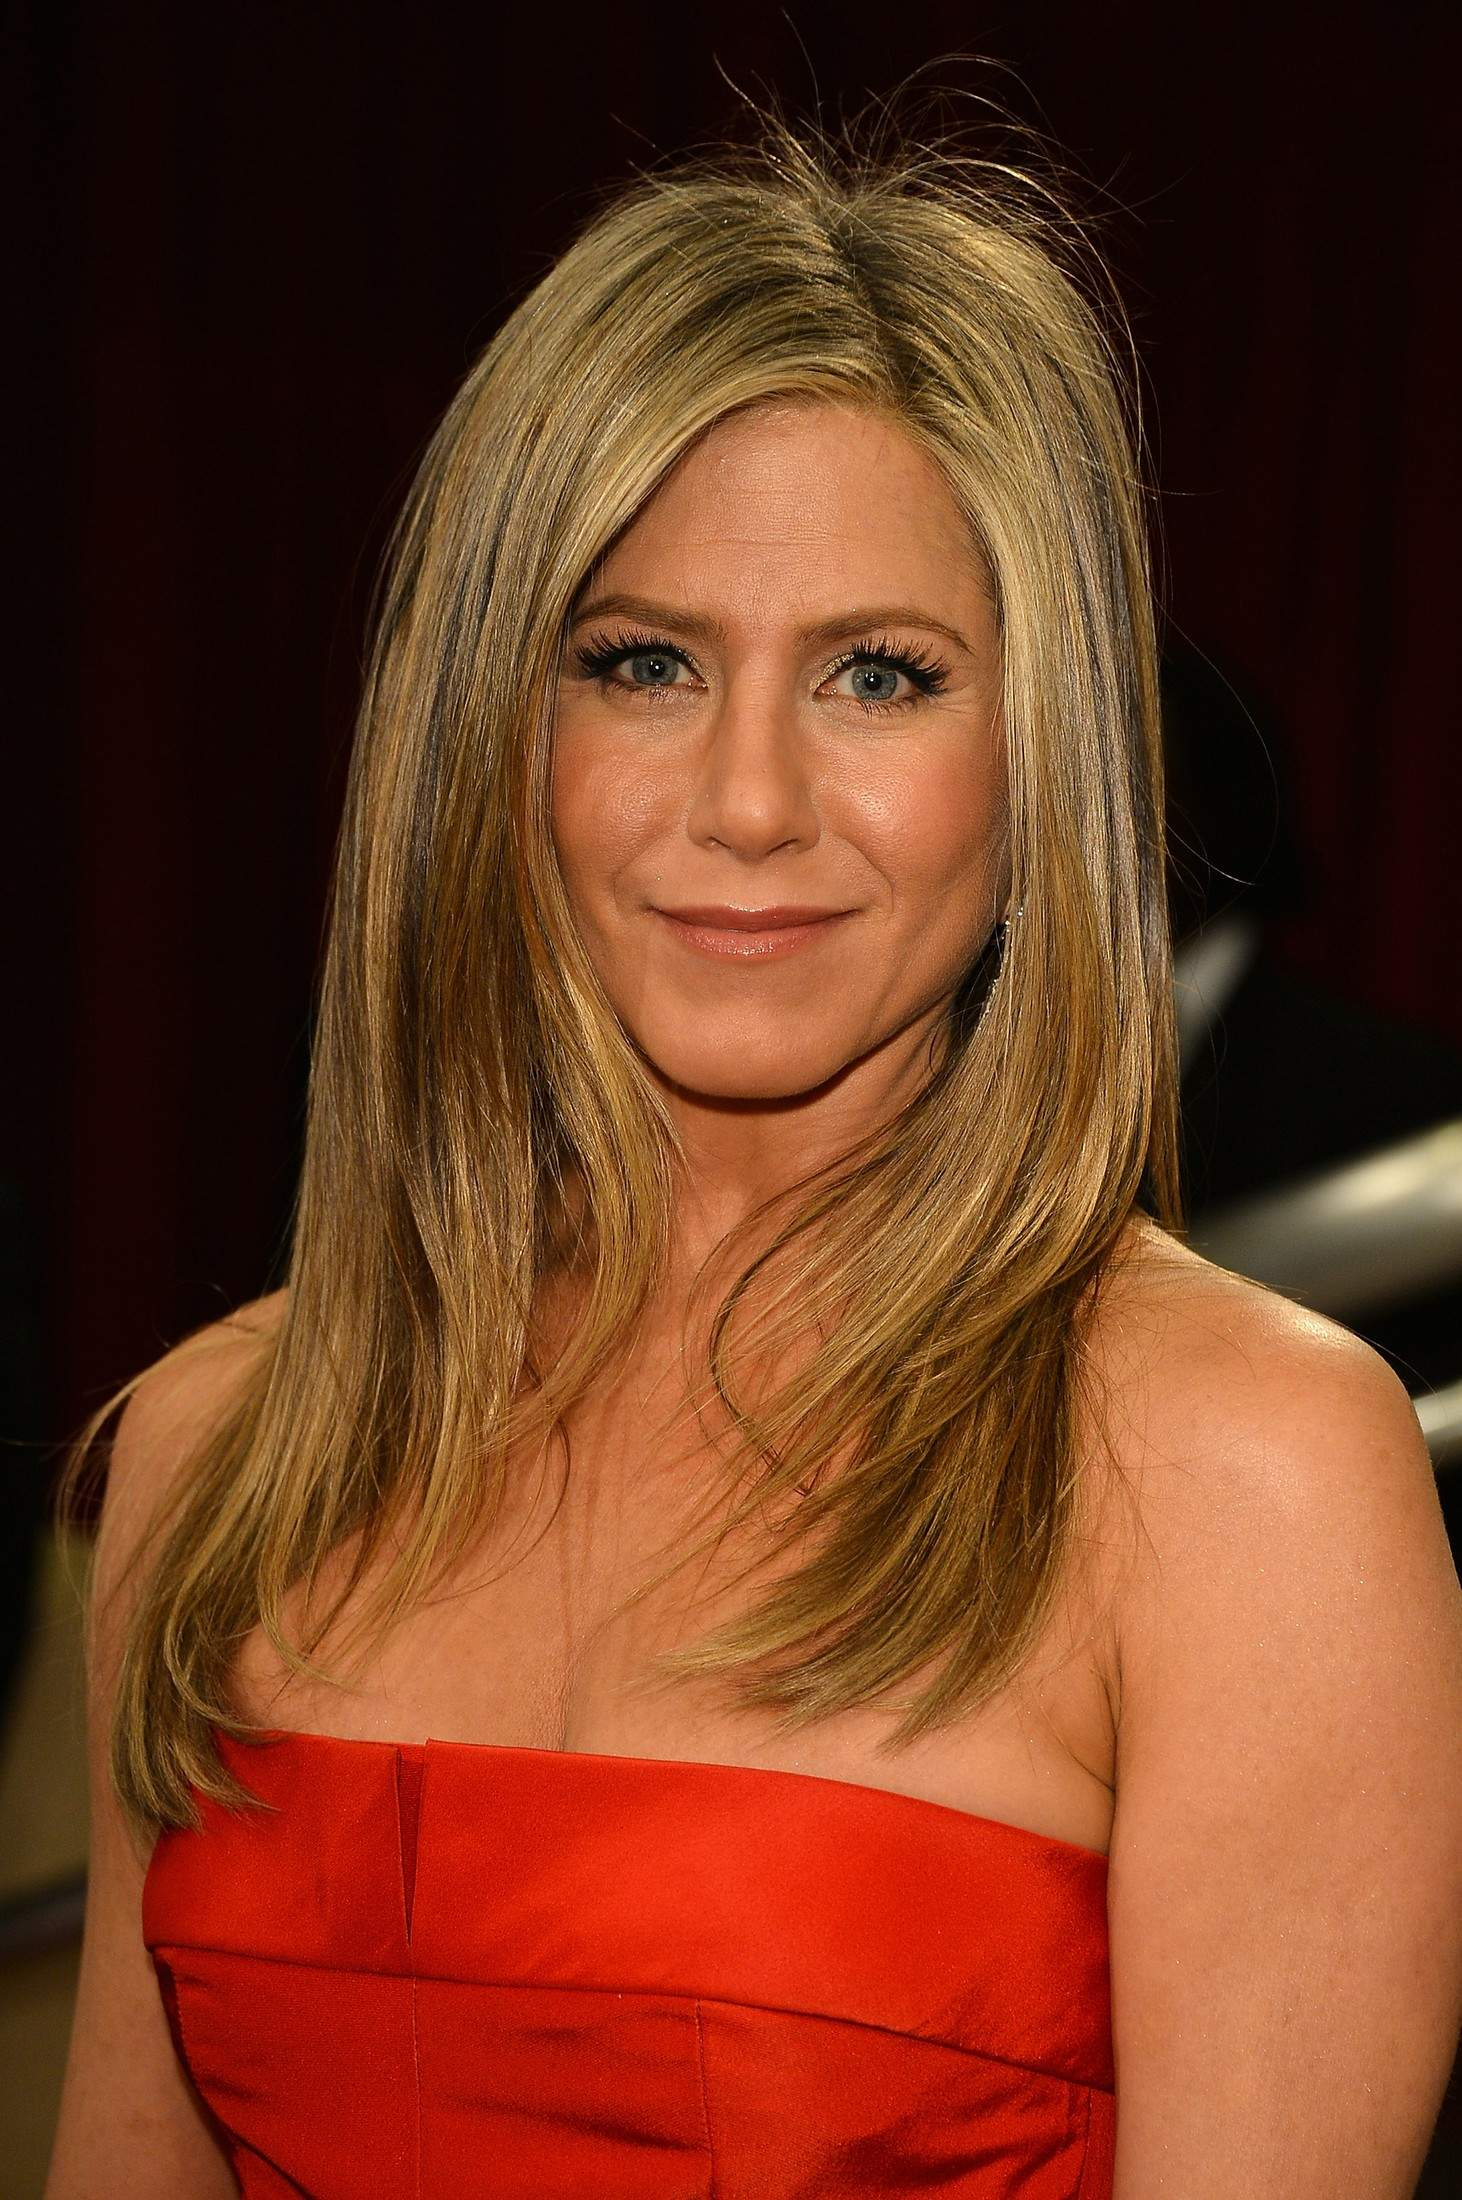 S3 ALL IN ONE: Jennifer Aniston very sexy picture col.1 |Jennifer Aniston Photography